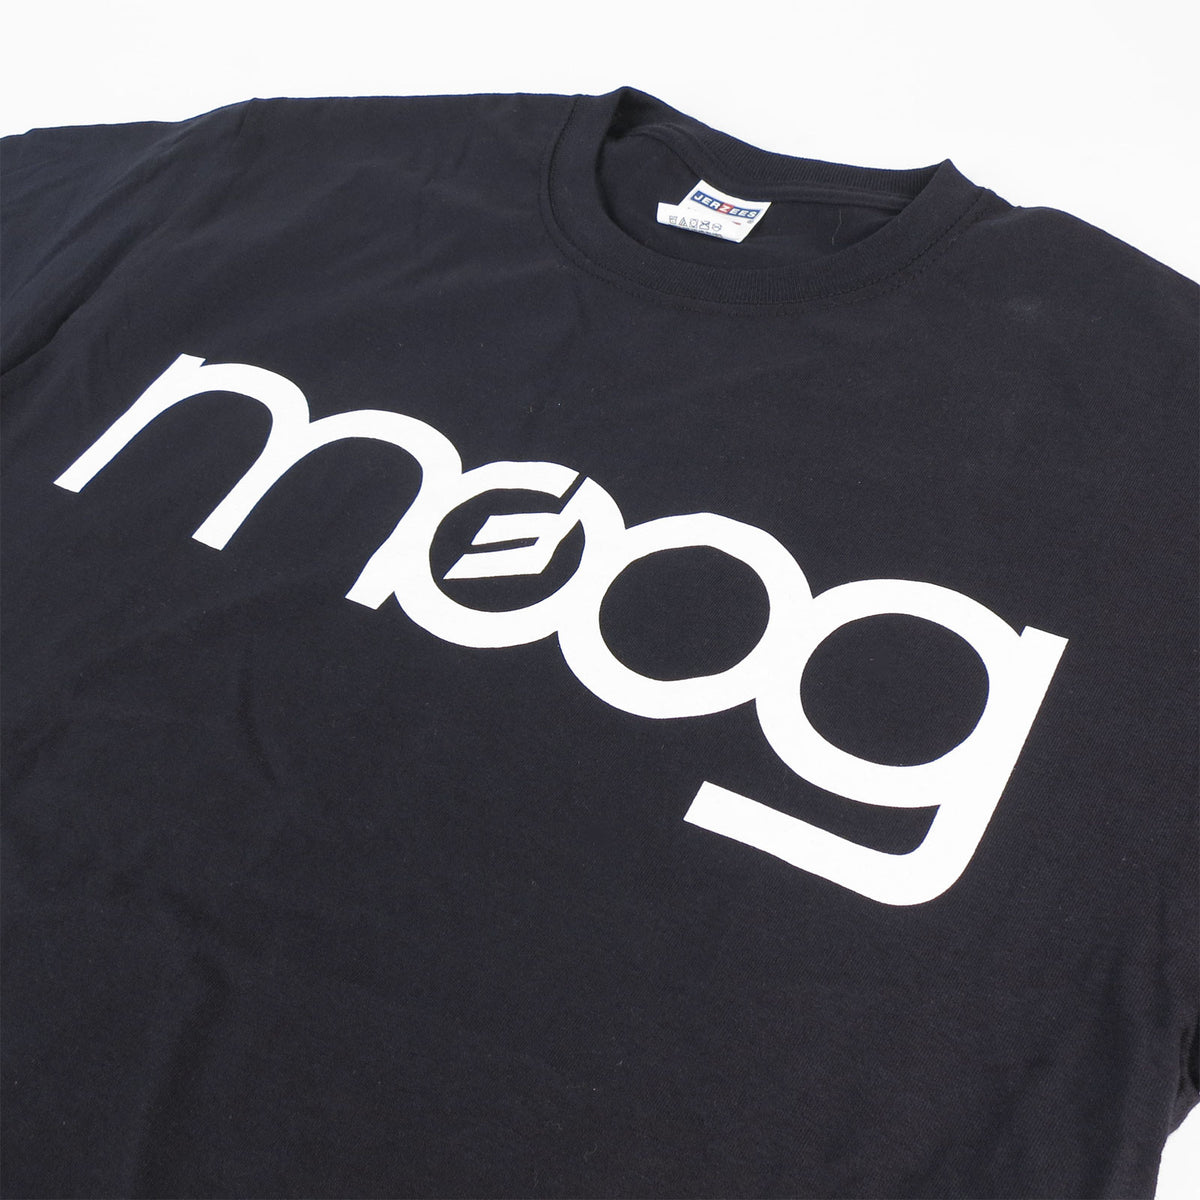 Moog: Logo Shirt - Black